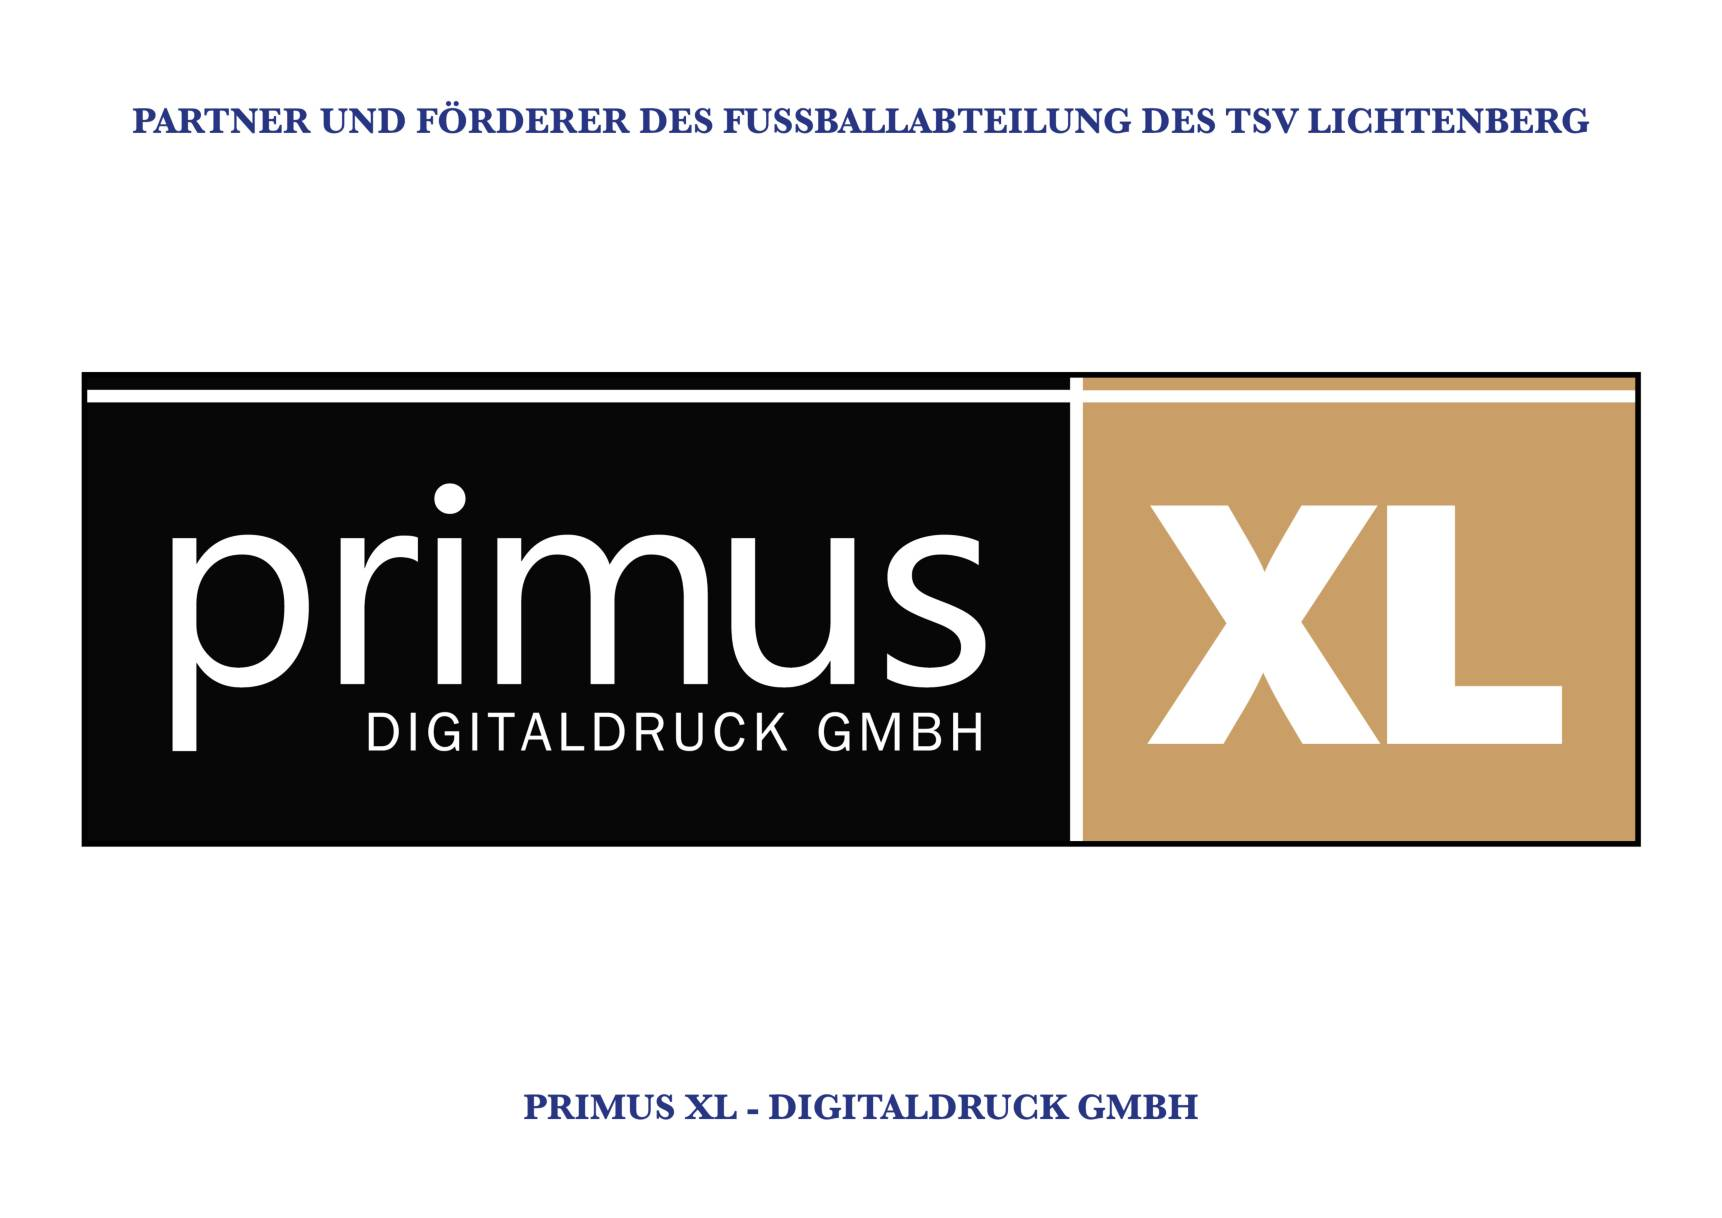 TSV Lichtenberg - Sponsoren (Primus XL Digitaldruck GmbH)